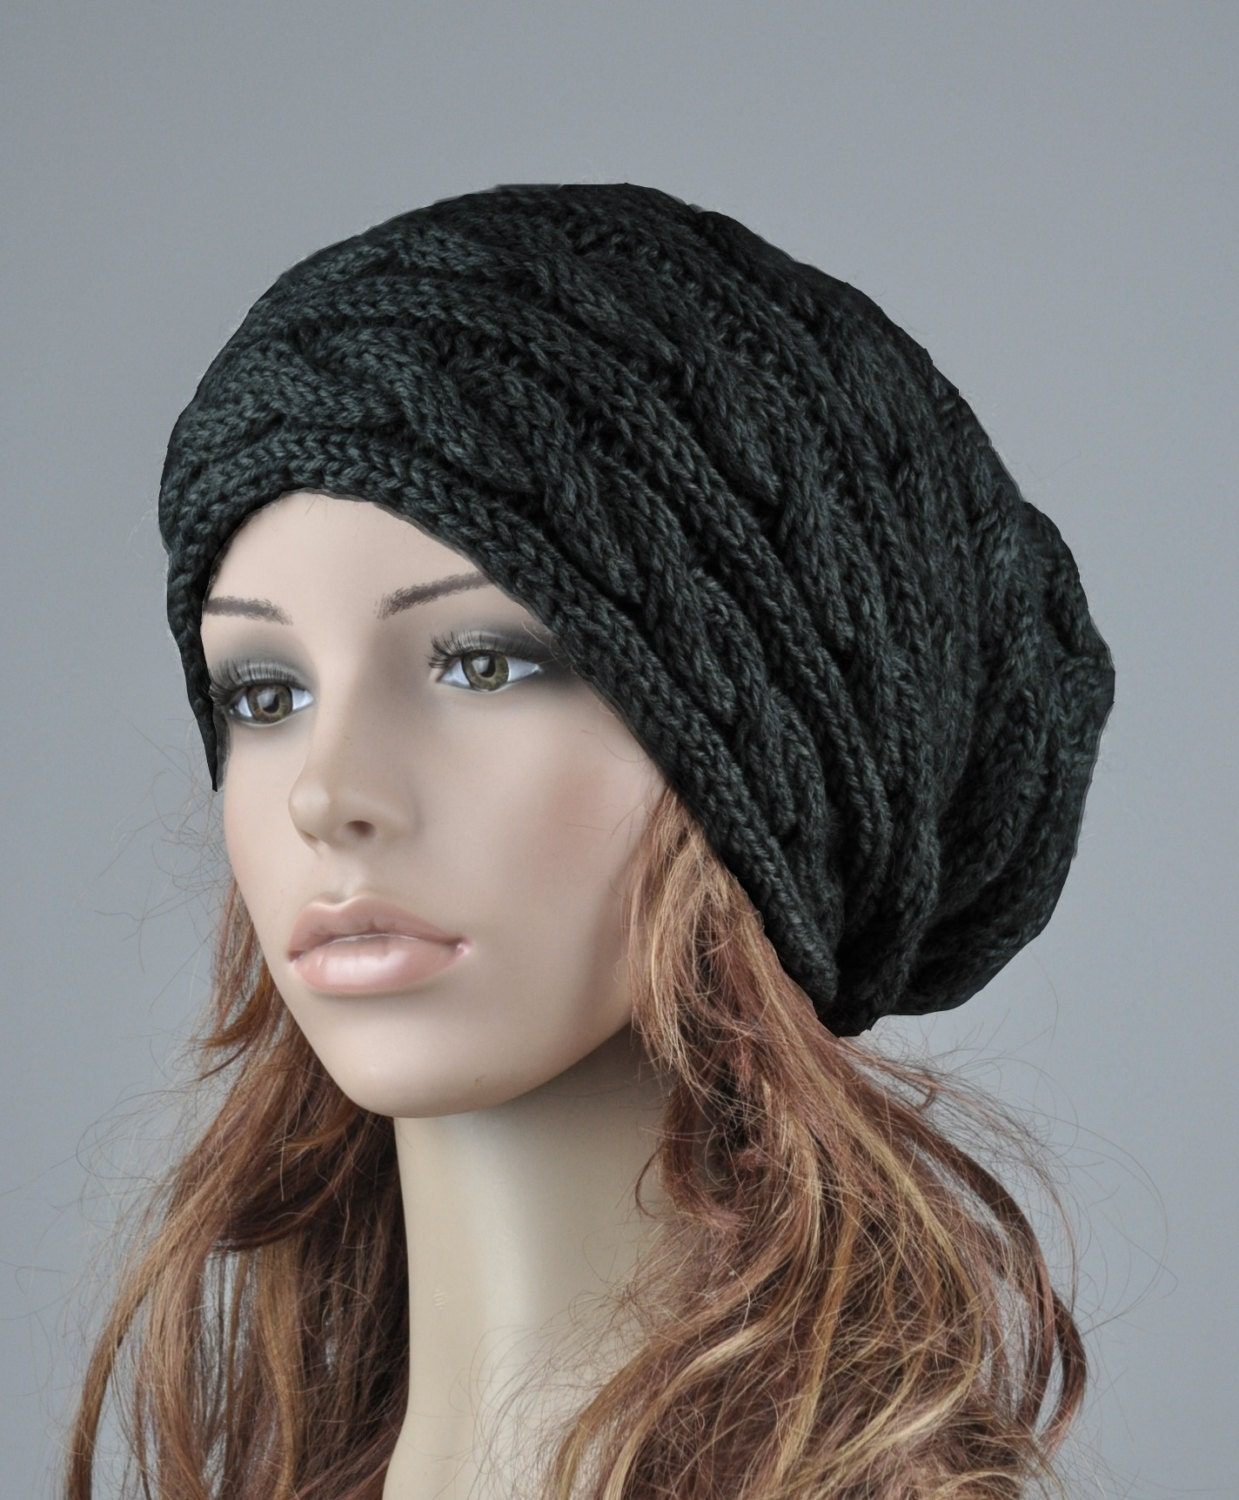 930a0aca3e6 Hand knit hat wool woman winter hat Black cable slouchy hat-ready to ship. 1